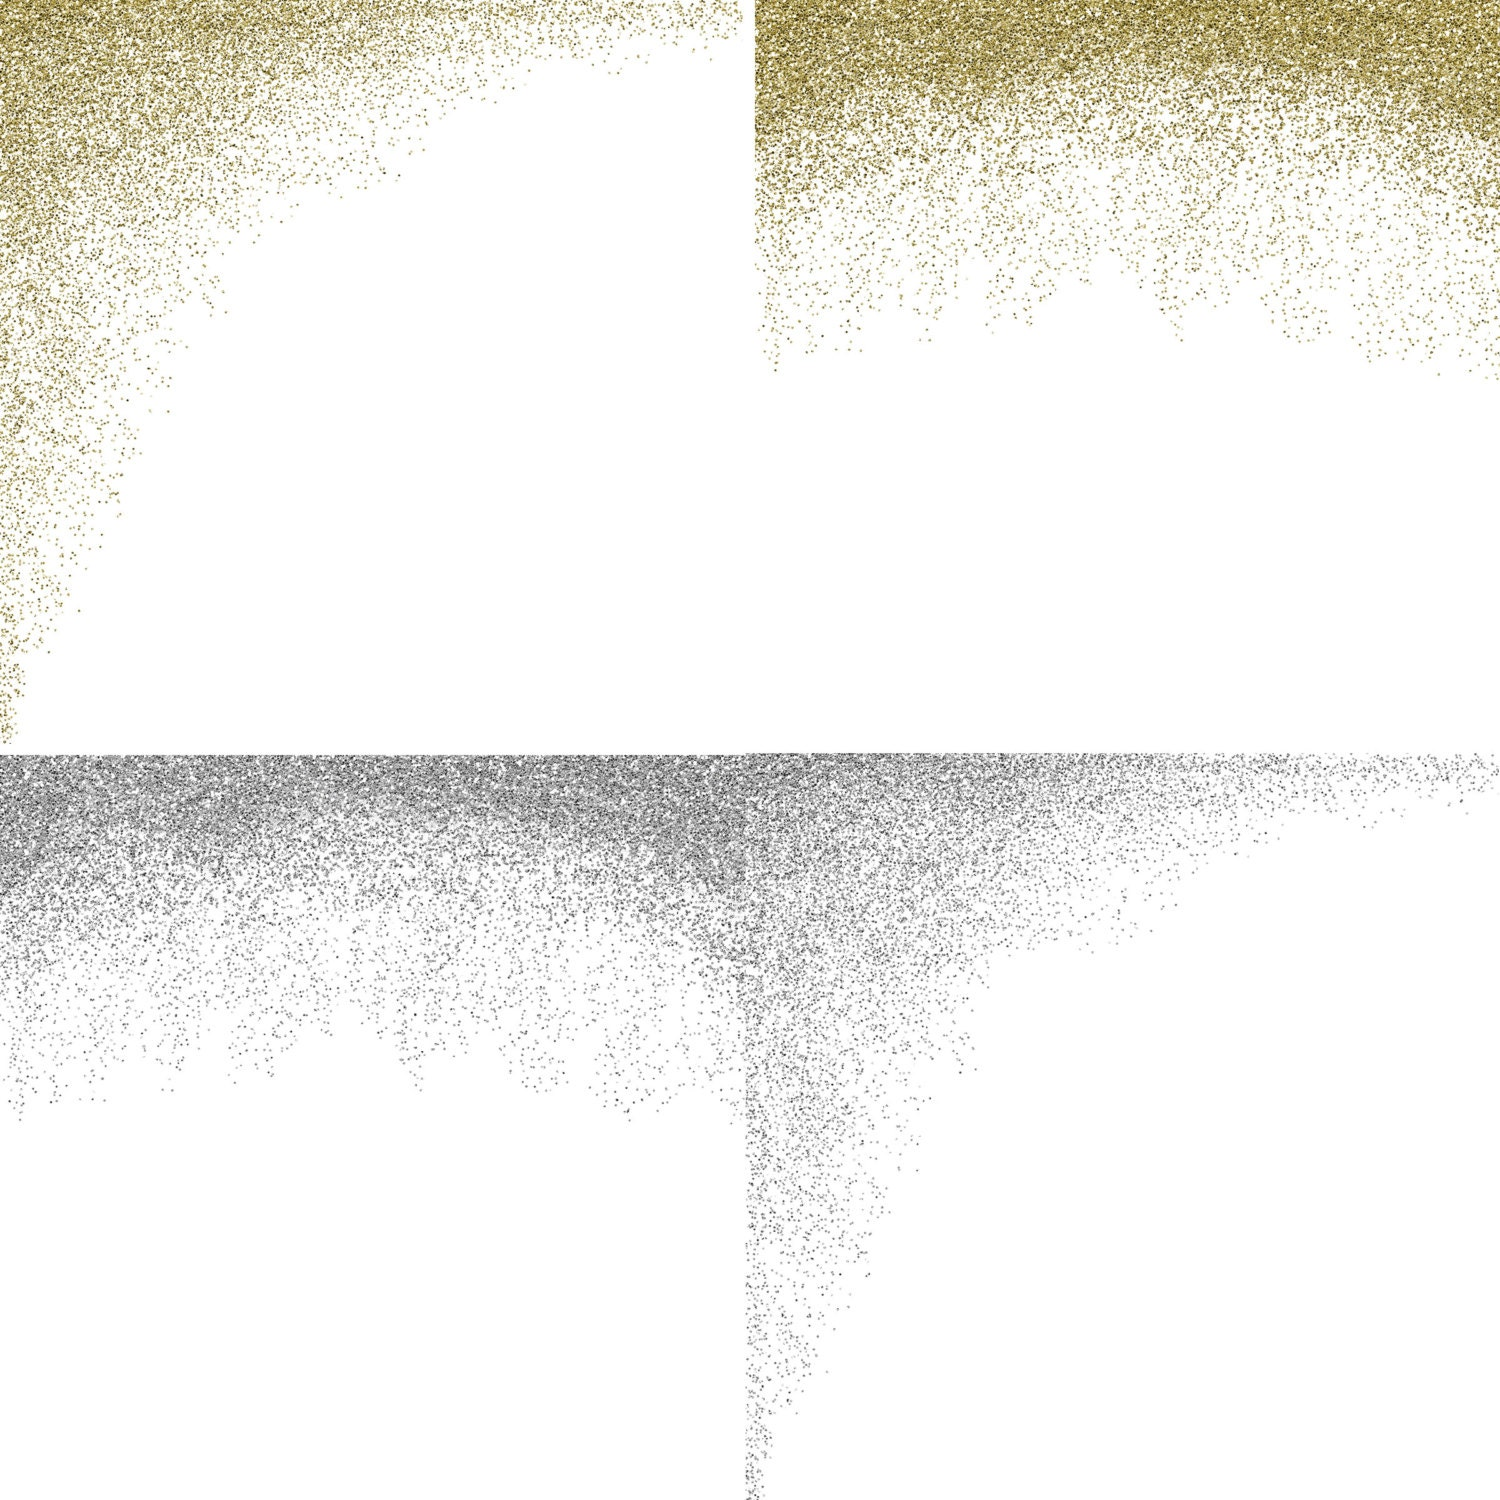 Glitter Border Images - Reverse Search